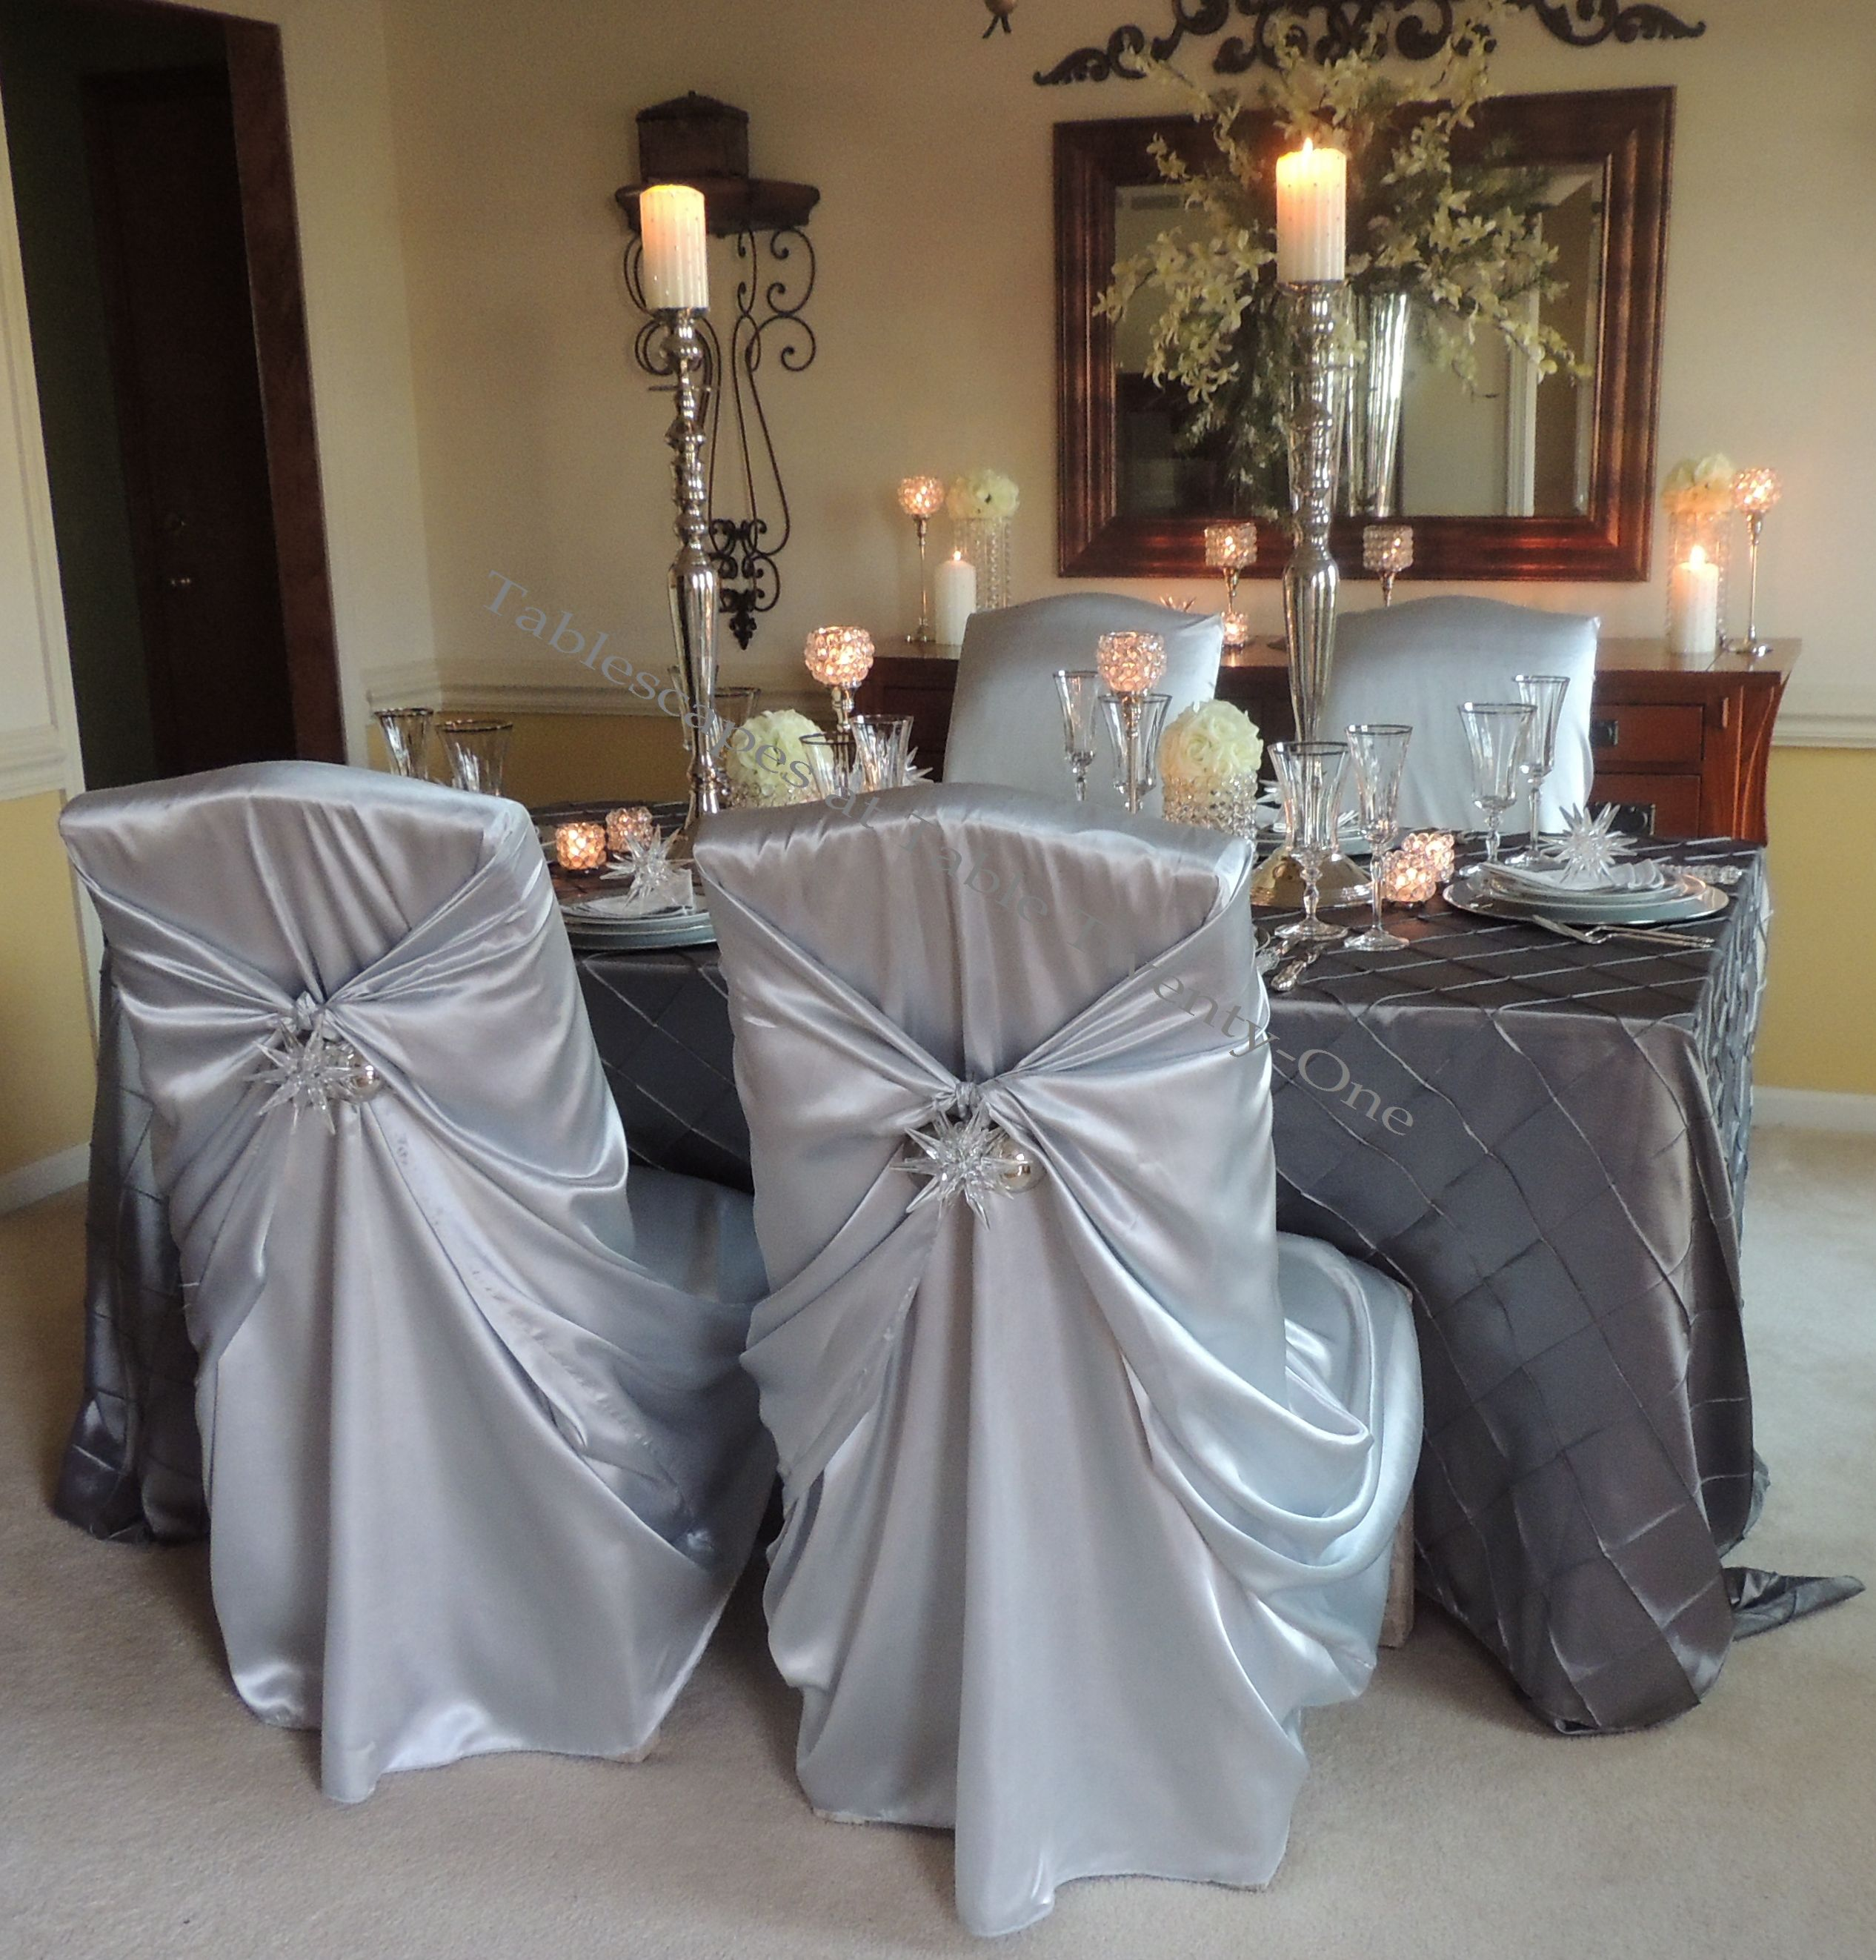 Tablescapes at Table Twenty-One, Platinum New Year's Eve Wedding: Full dining room